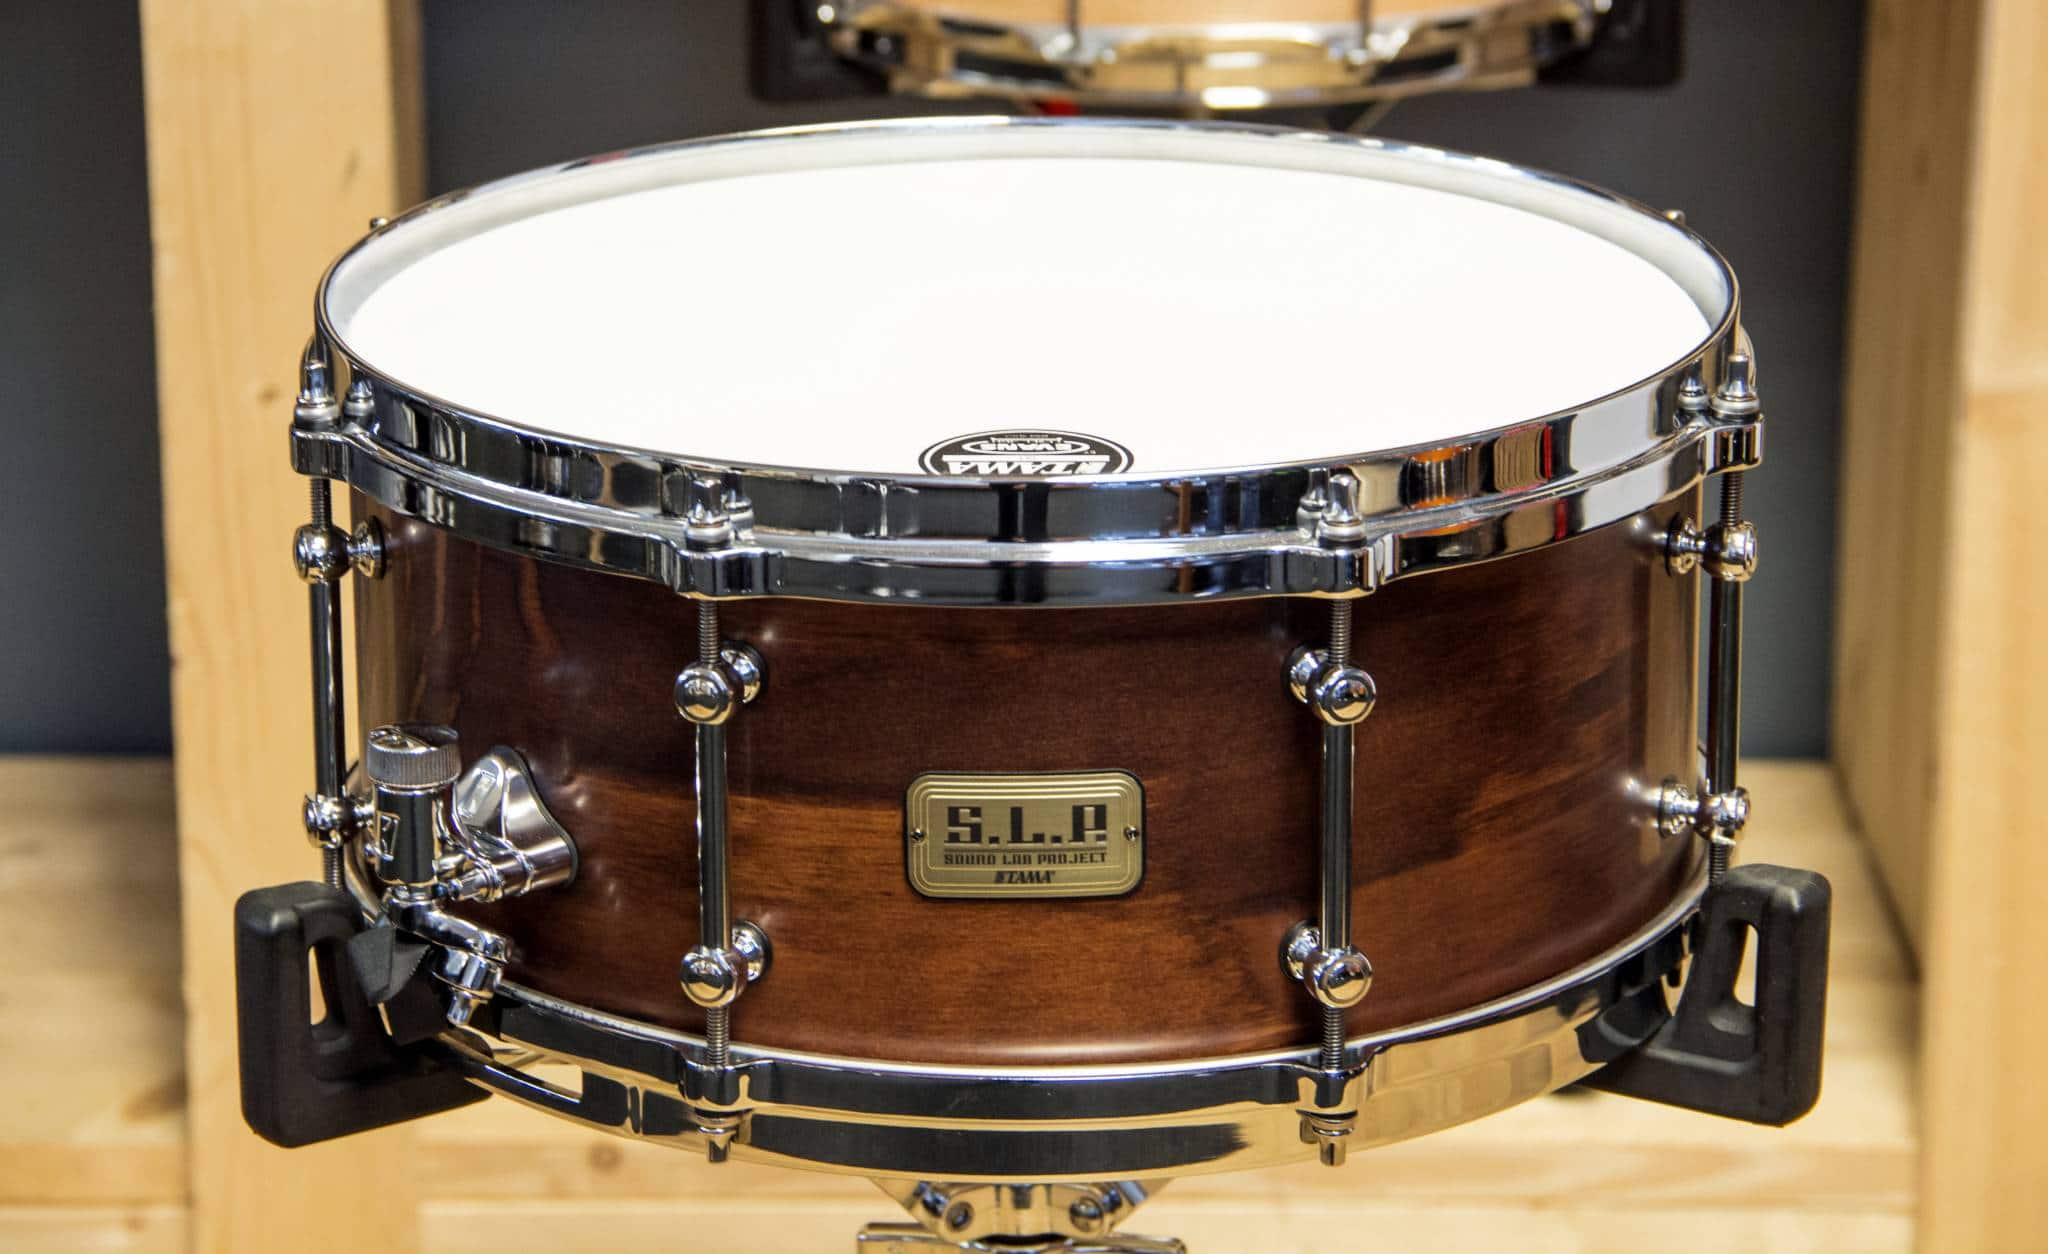 Tama LSP146 Fat Spruce Sound Lab Project (S.L.P.) snaredrum